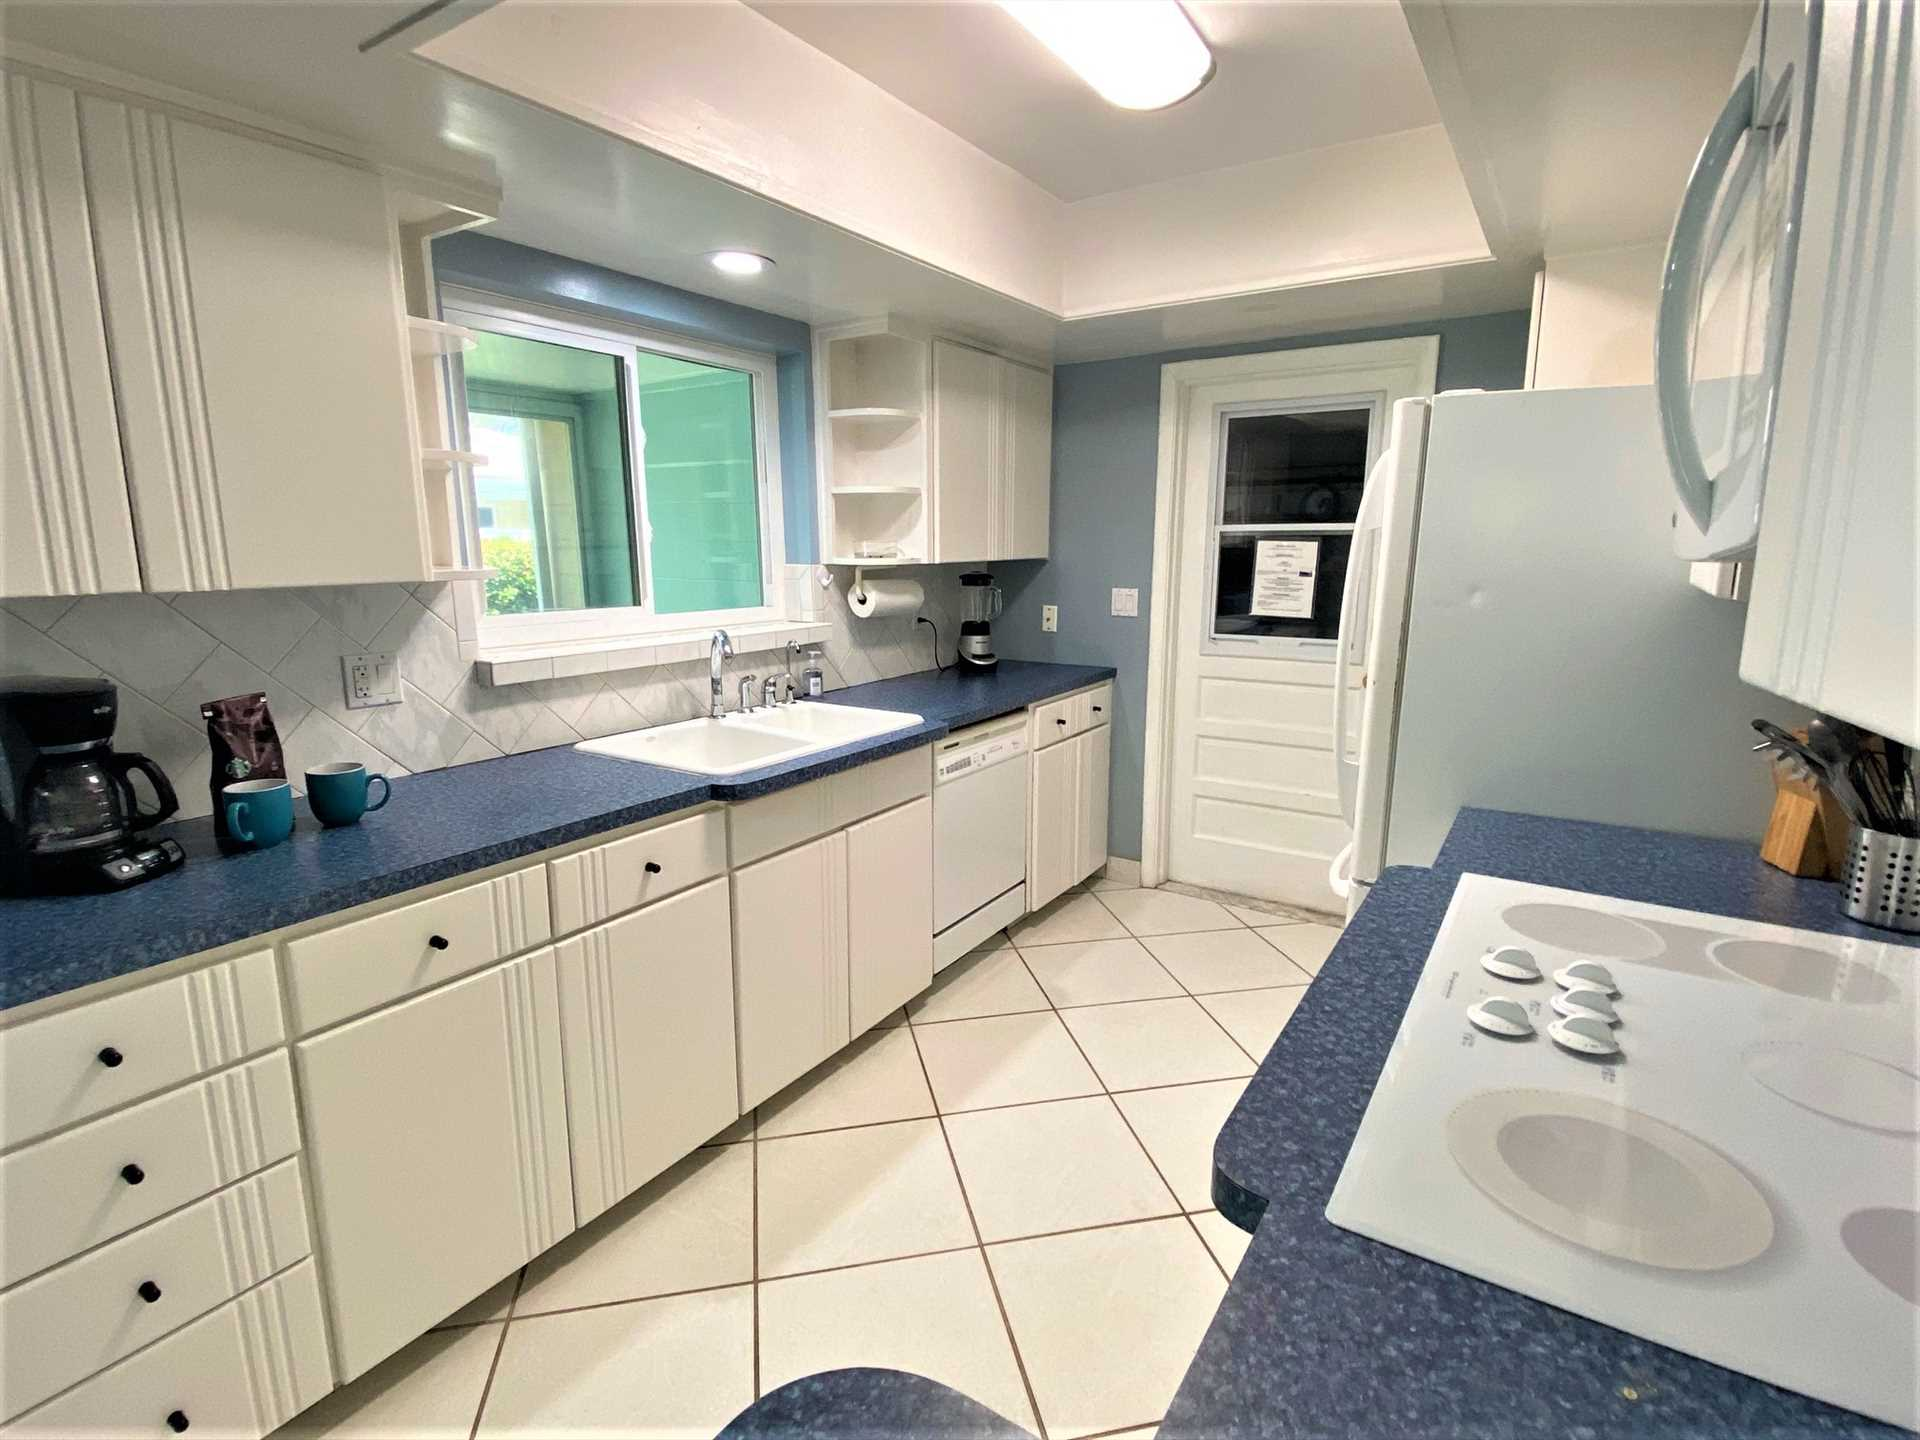 Fully equipped kitchen has all appliances, dishes, cookware